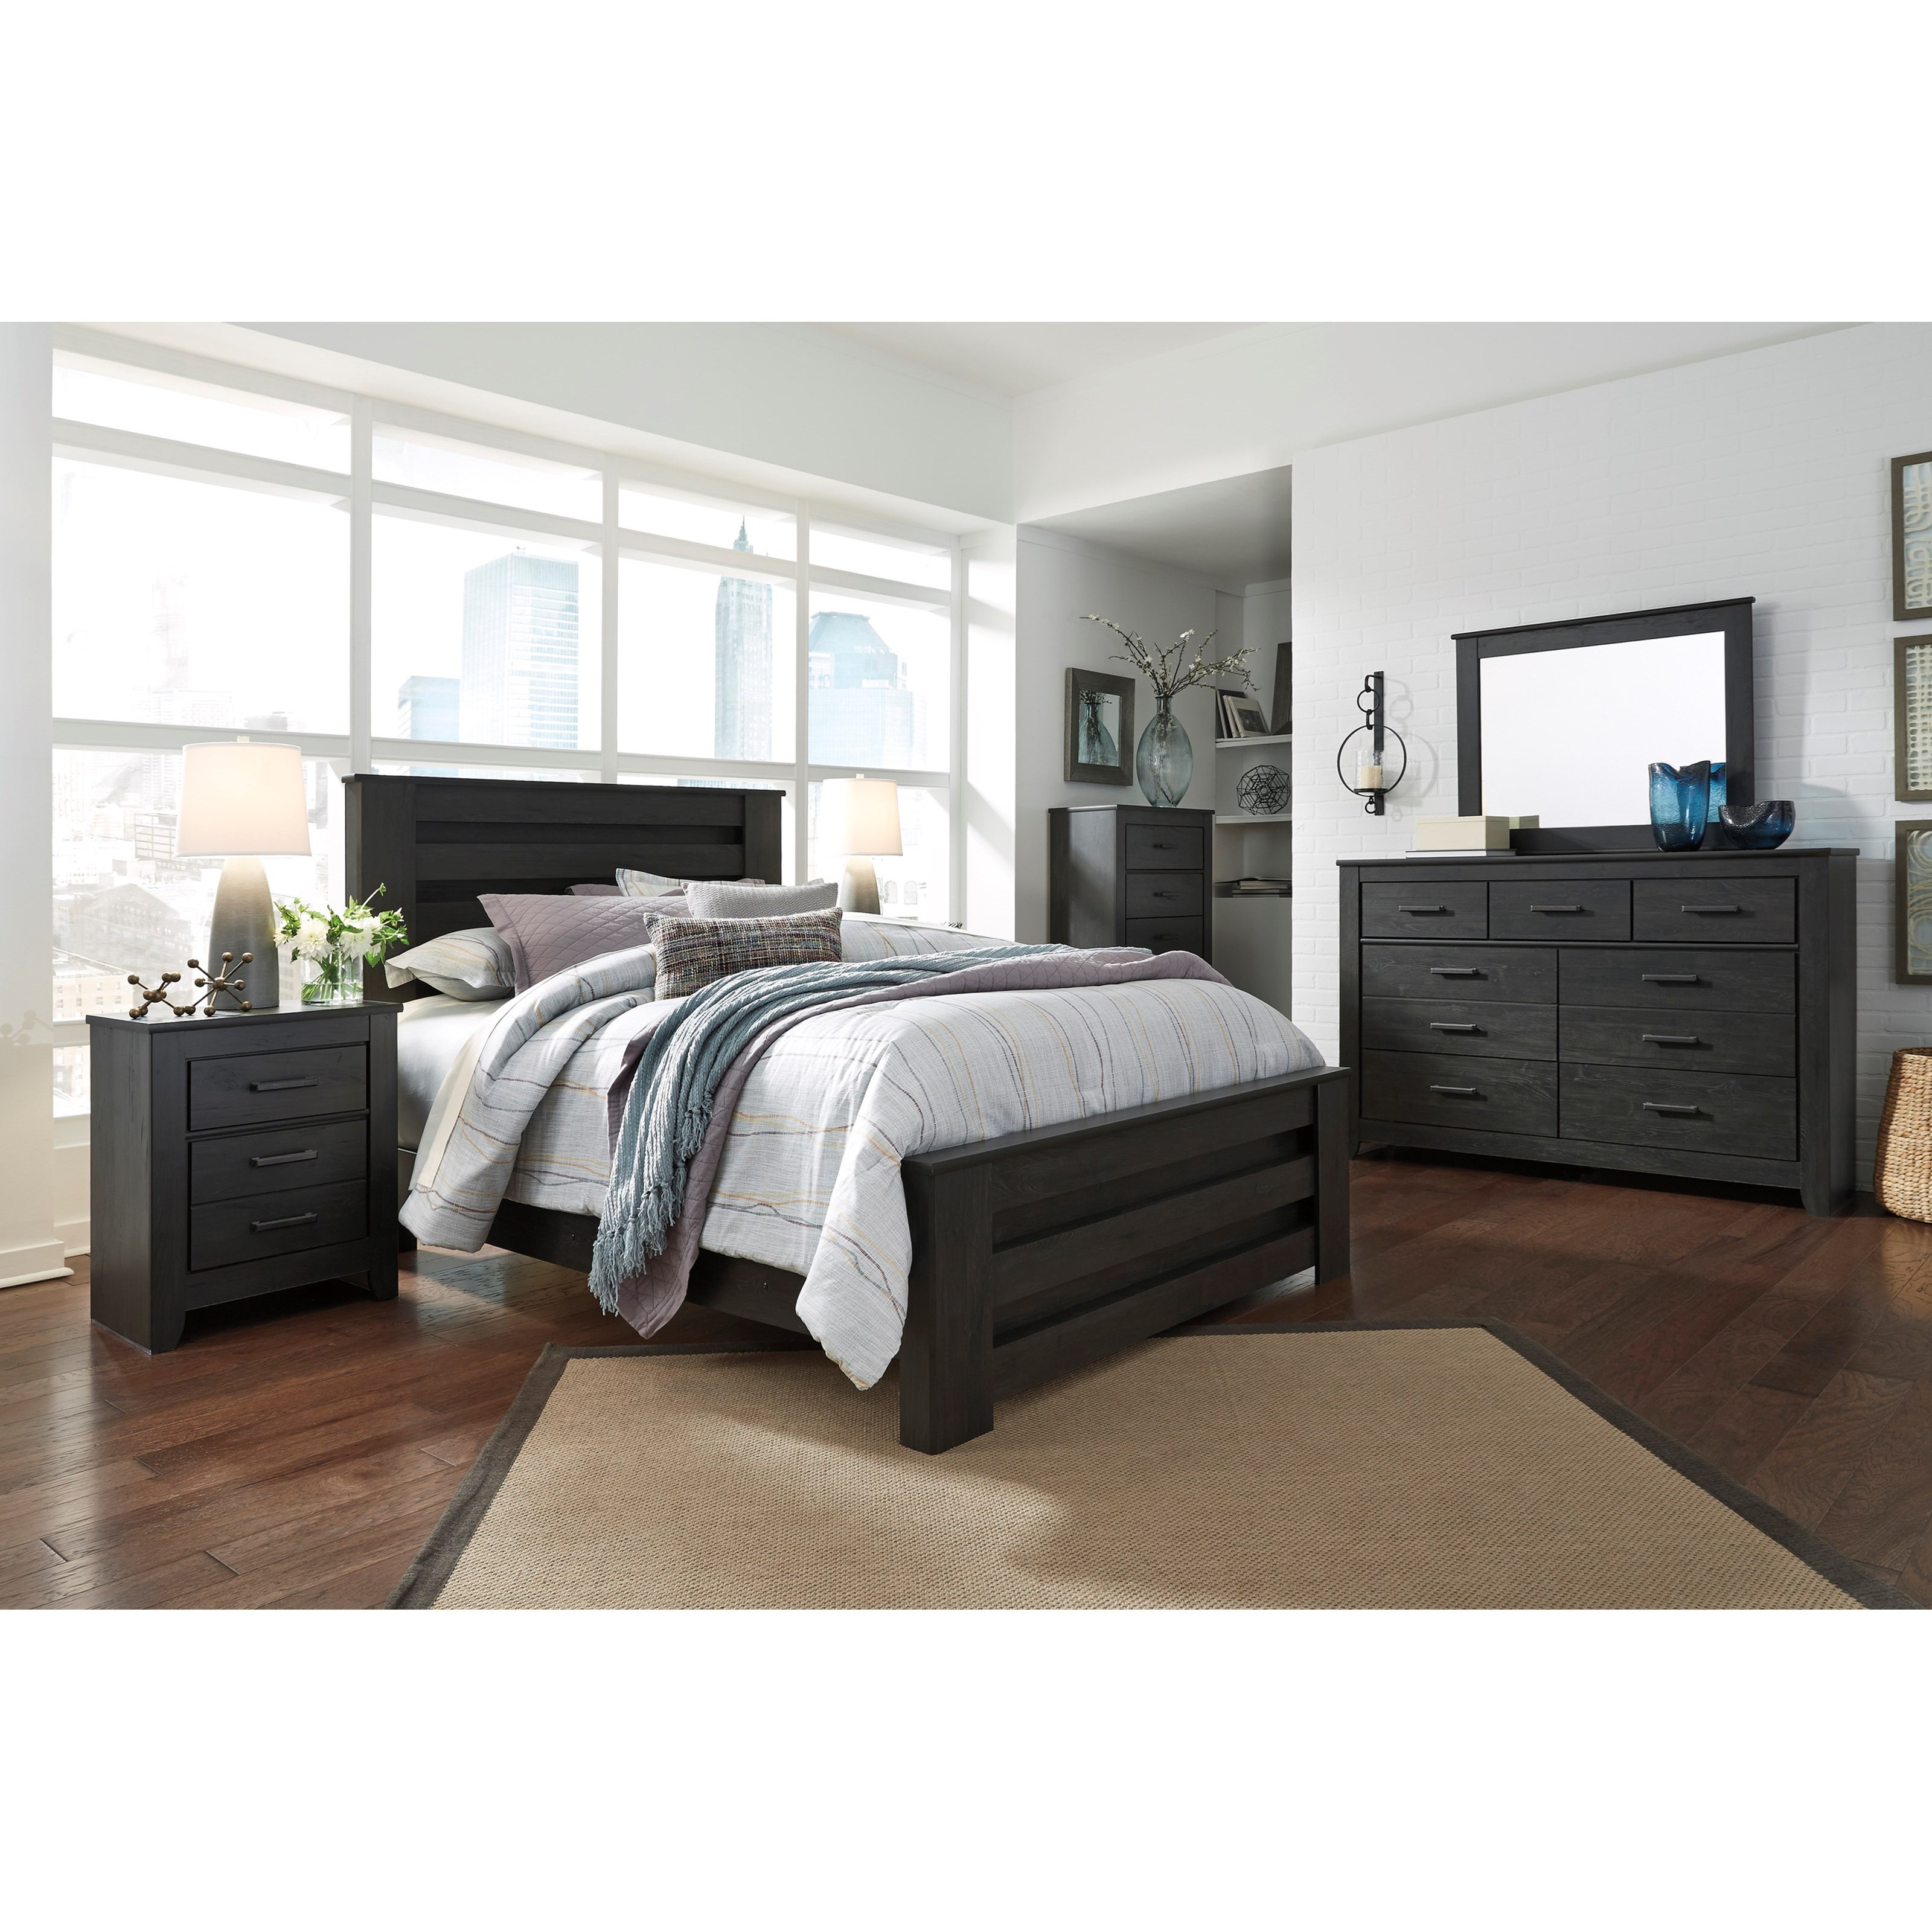 Brinxton Queen Bedroom Group by Signature Design by Ashley at Standard Furniture